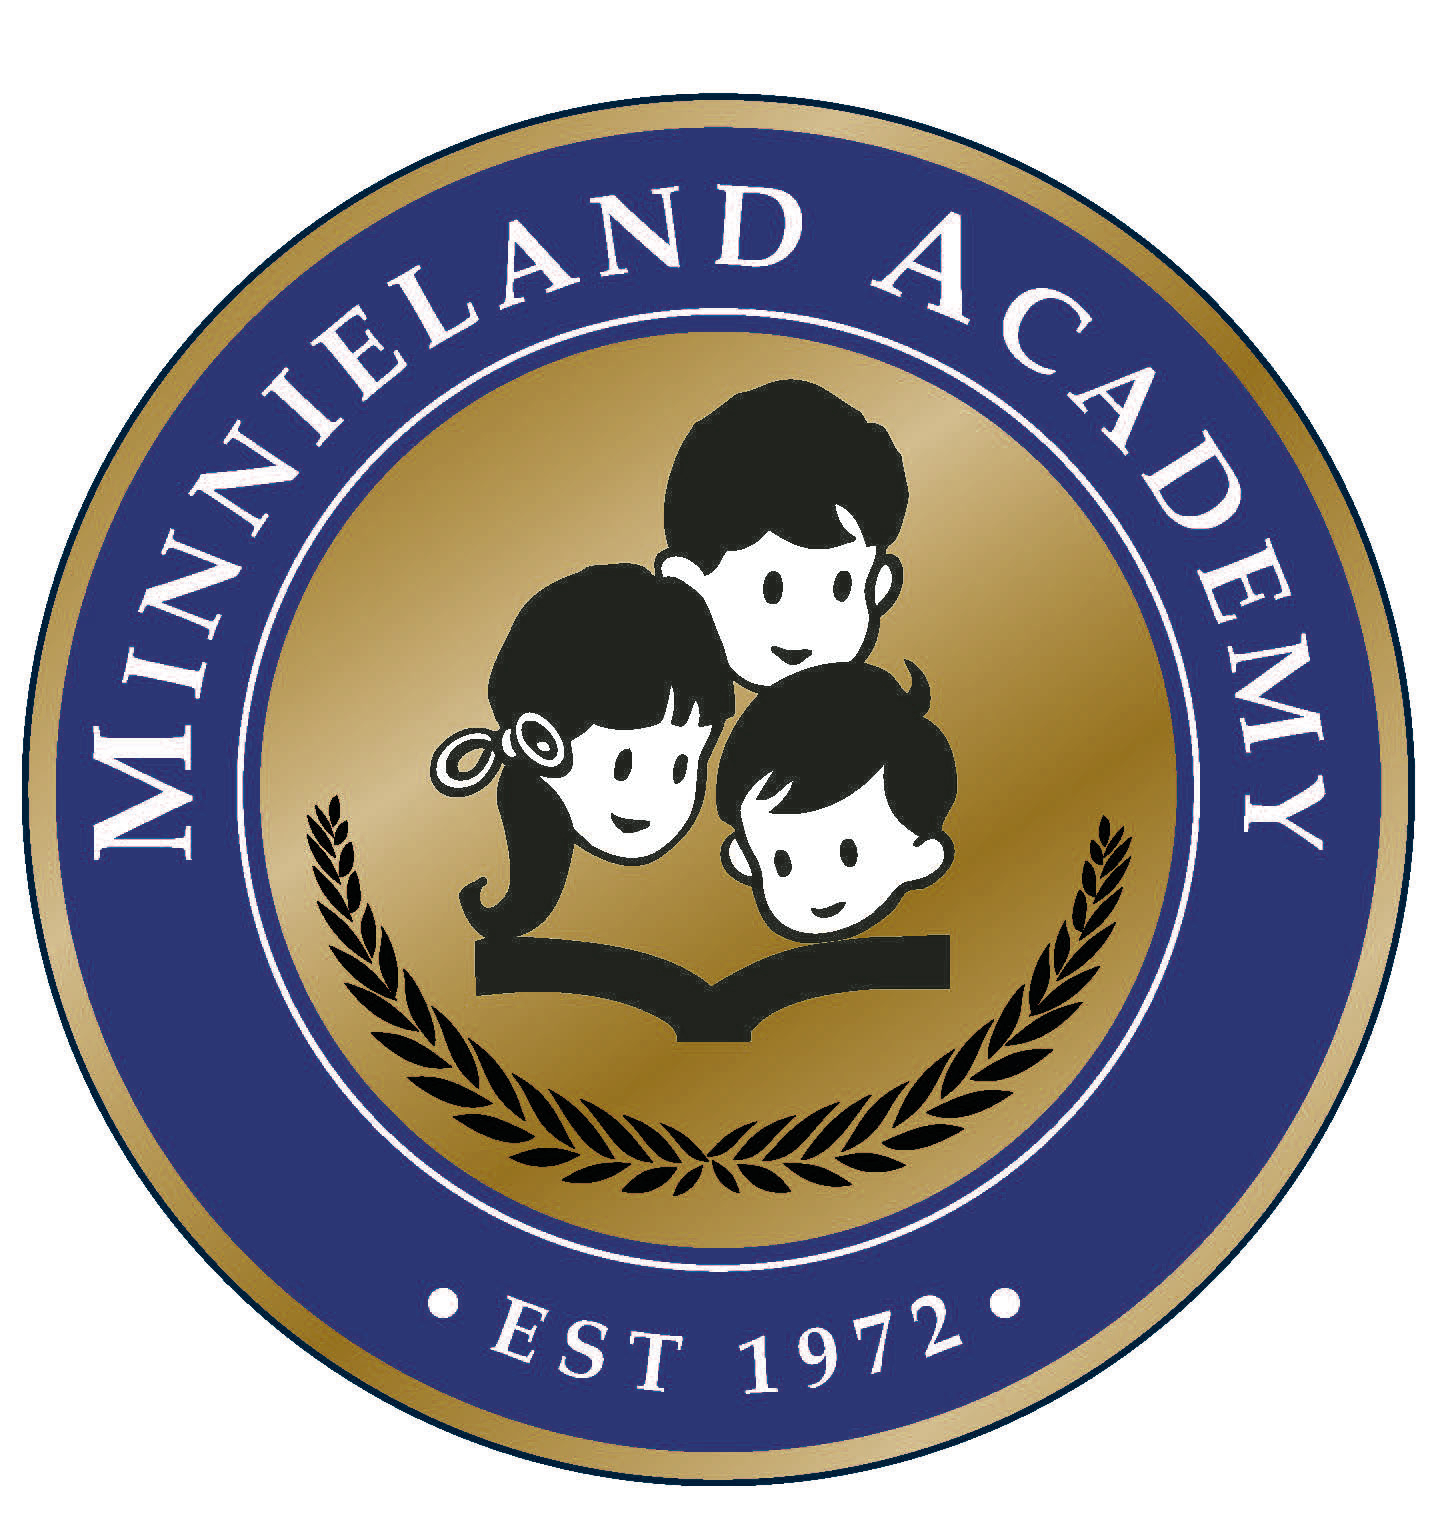 Minnieland Academy at Ashland